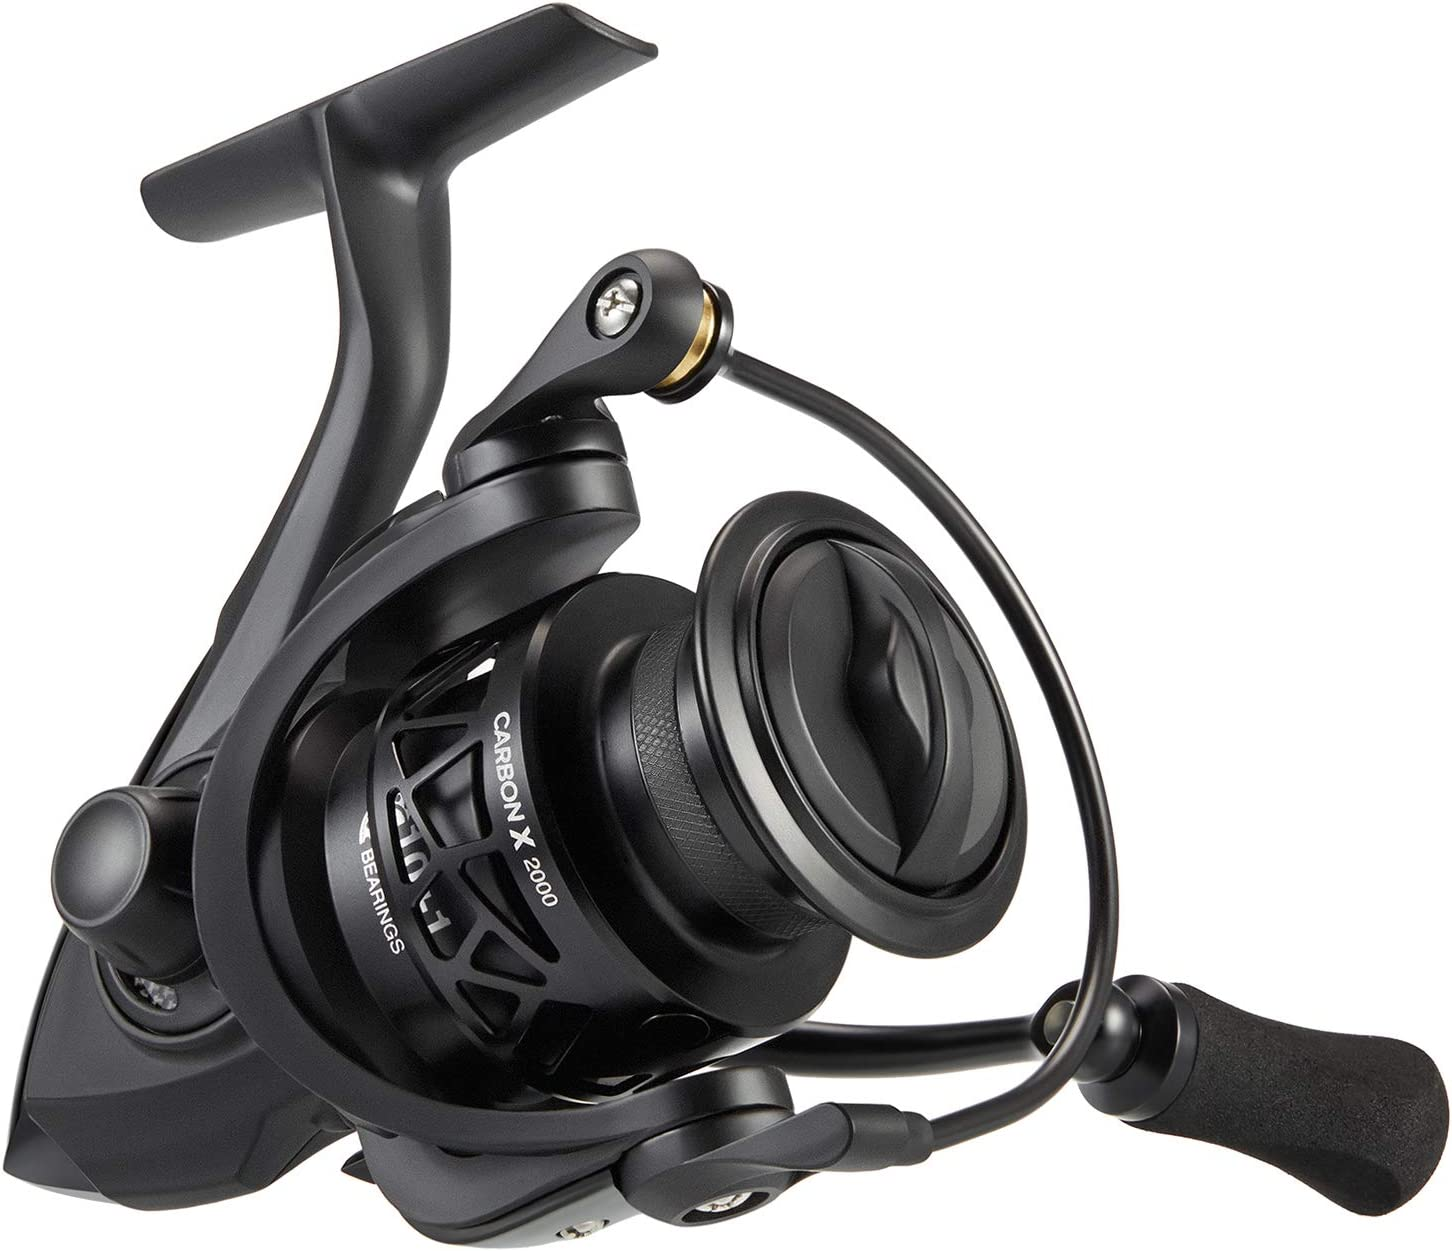 Top 7 Best Ultralight Spinning Reels - [Buying Guide Review -2021] 4